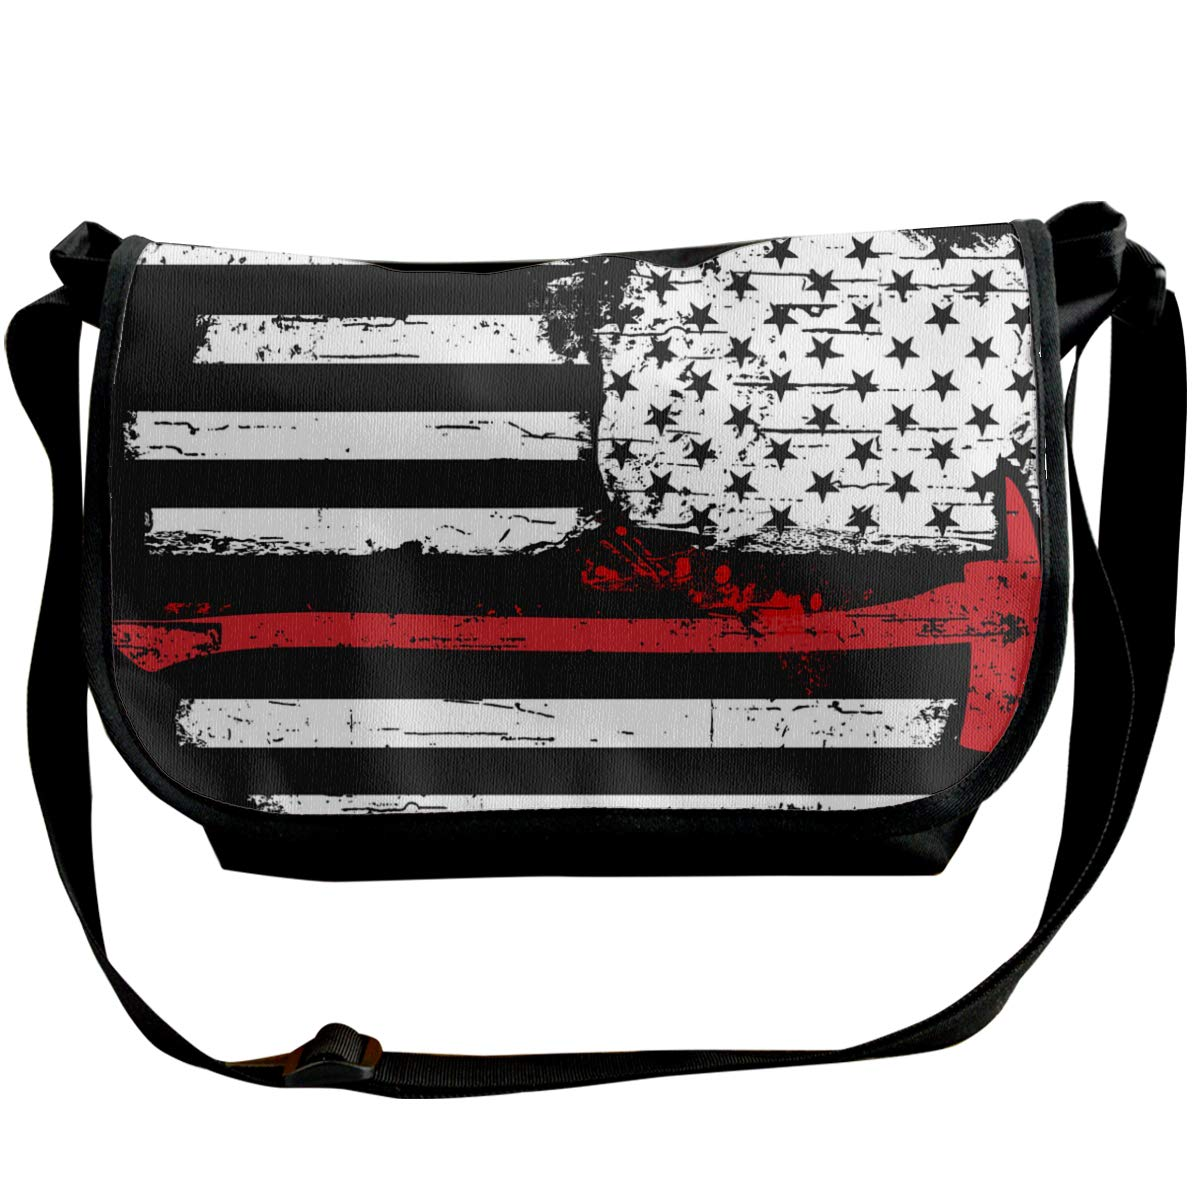 Futong Huaxia American Flag Firefighter Travel Messenger Bags Handbag Shoulder Bag Crossbody Bag Unisex